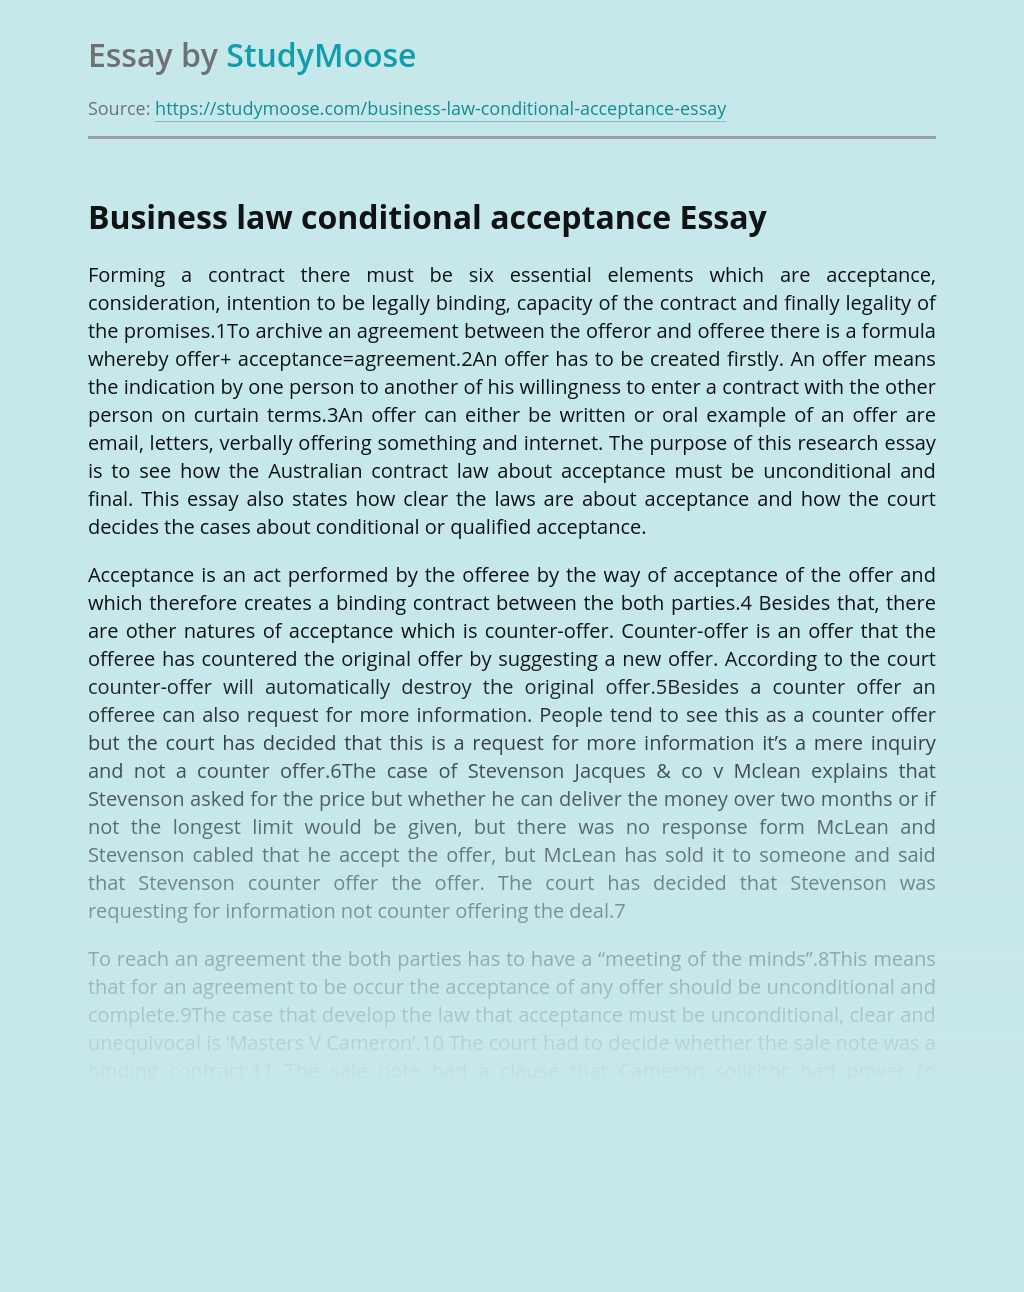 Business law conditional acceptance